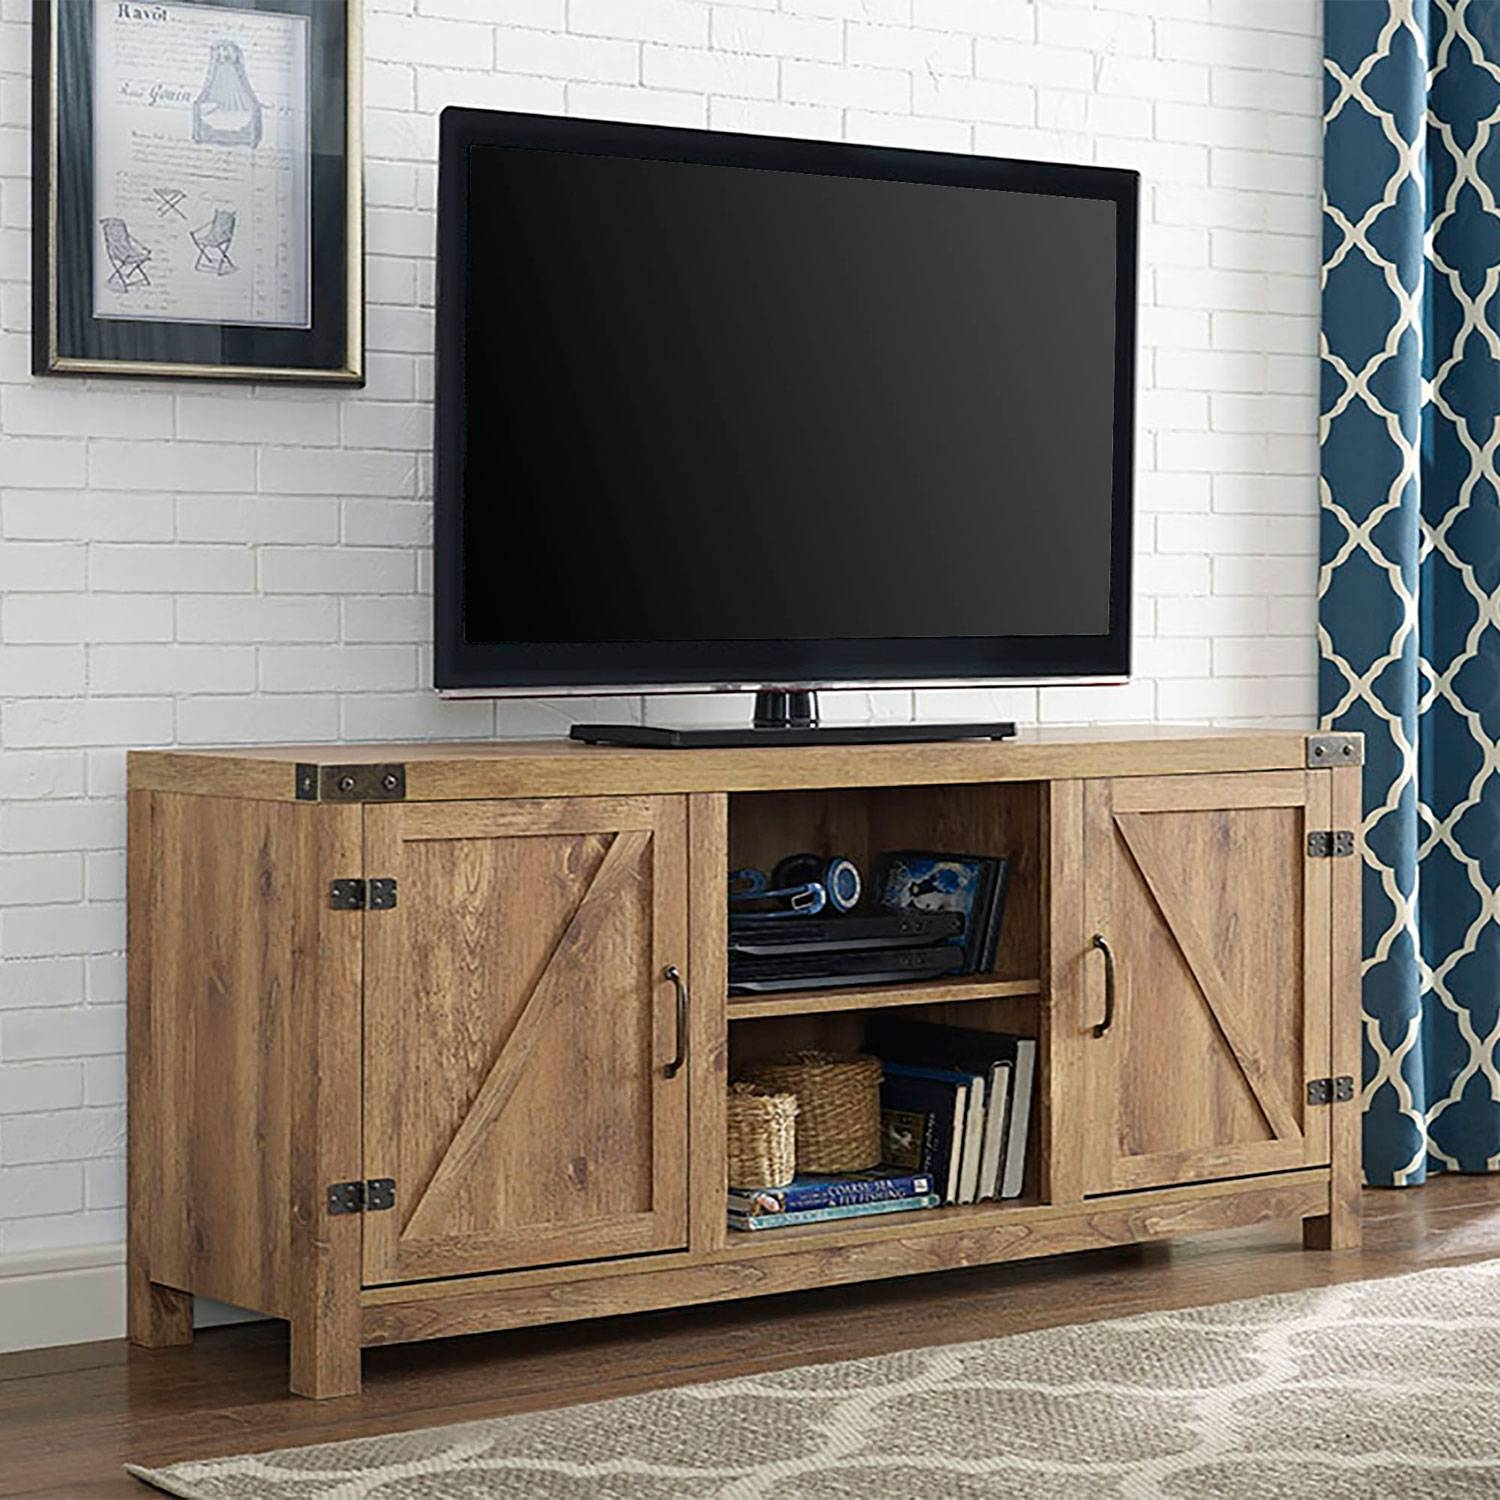 Tv Stands & Cabinets On Sale | Bellacor regarding 24 Inch Wide Tv Stands (Image 10 of 15)